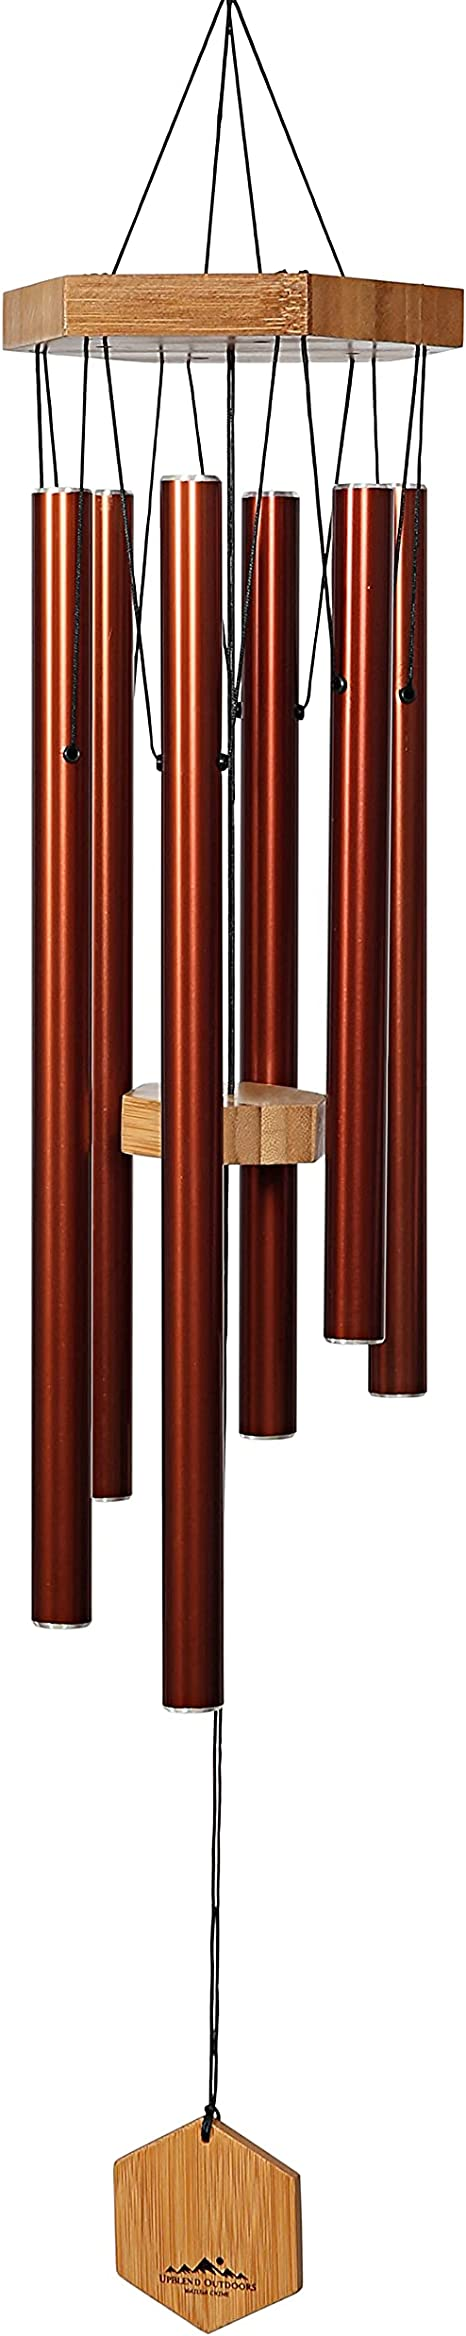 Wind Chimes for People Who Like Their Neighbors